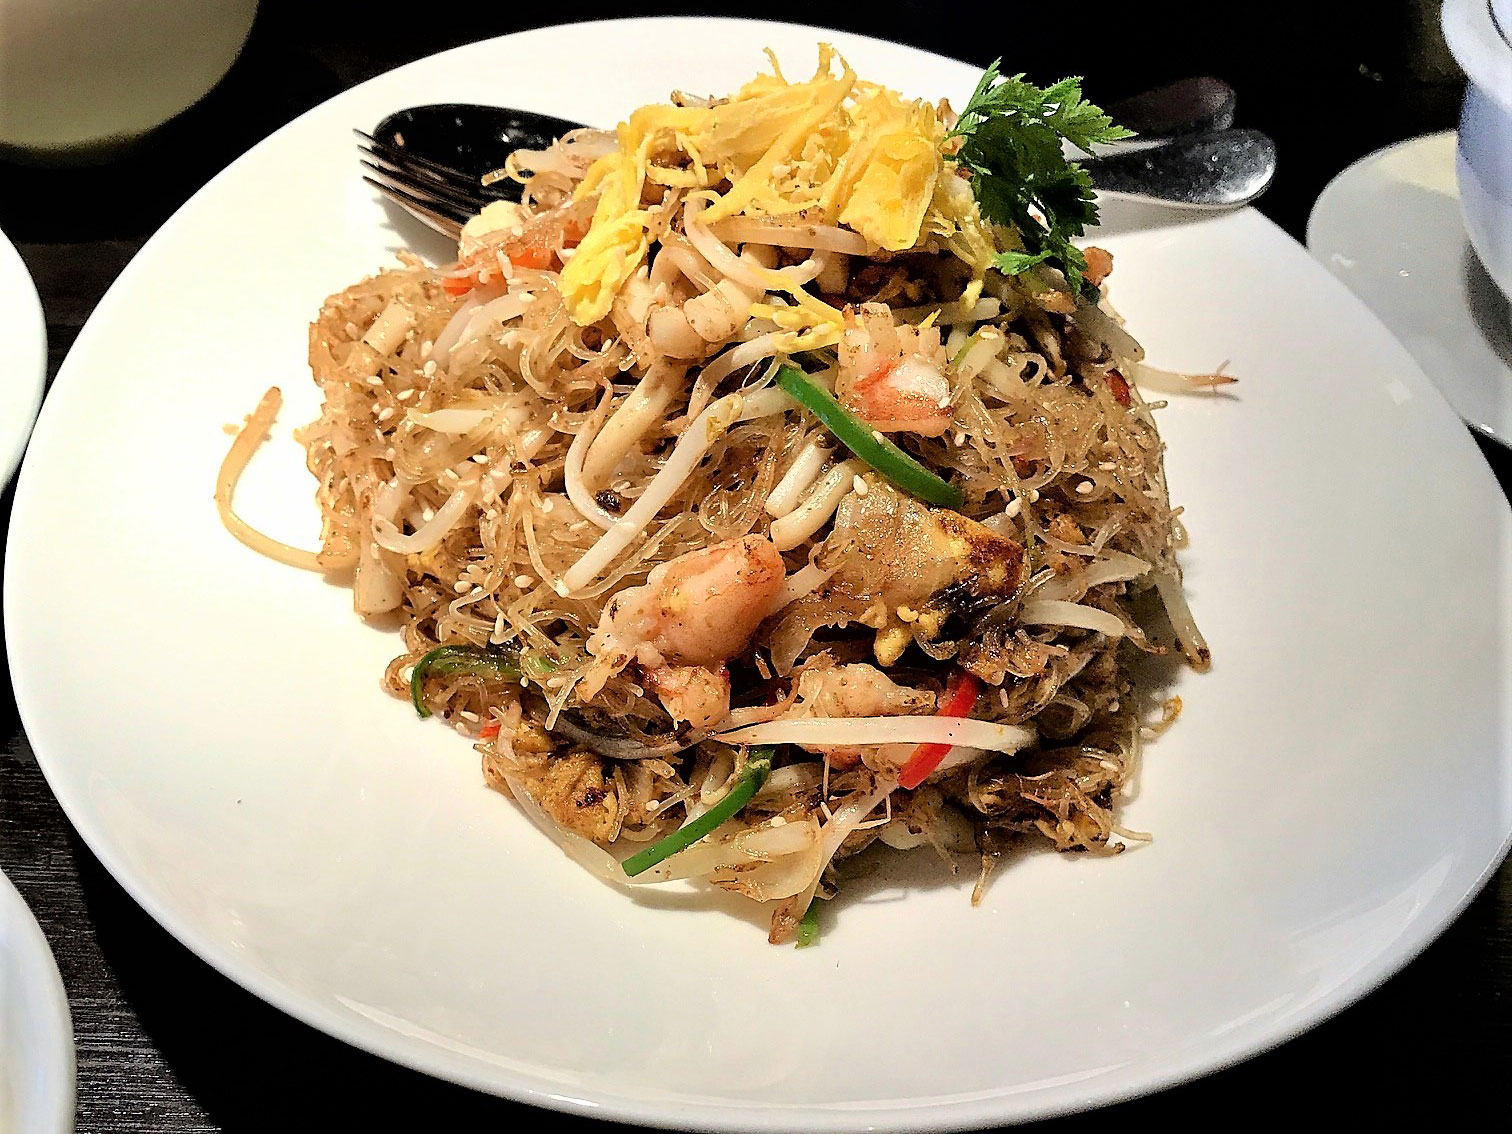 Vermicelli Noodles Hakkasan Mayfair London restaurant